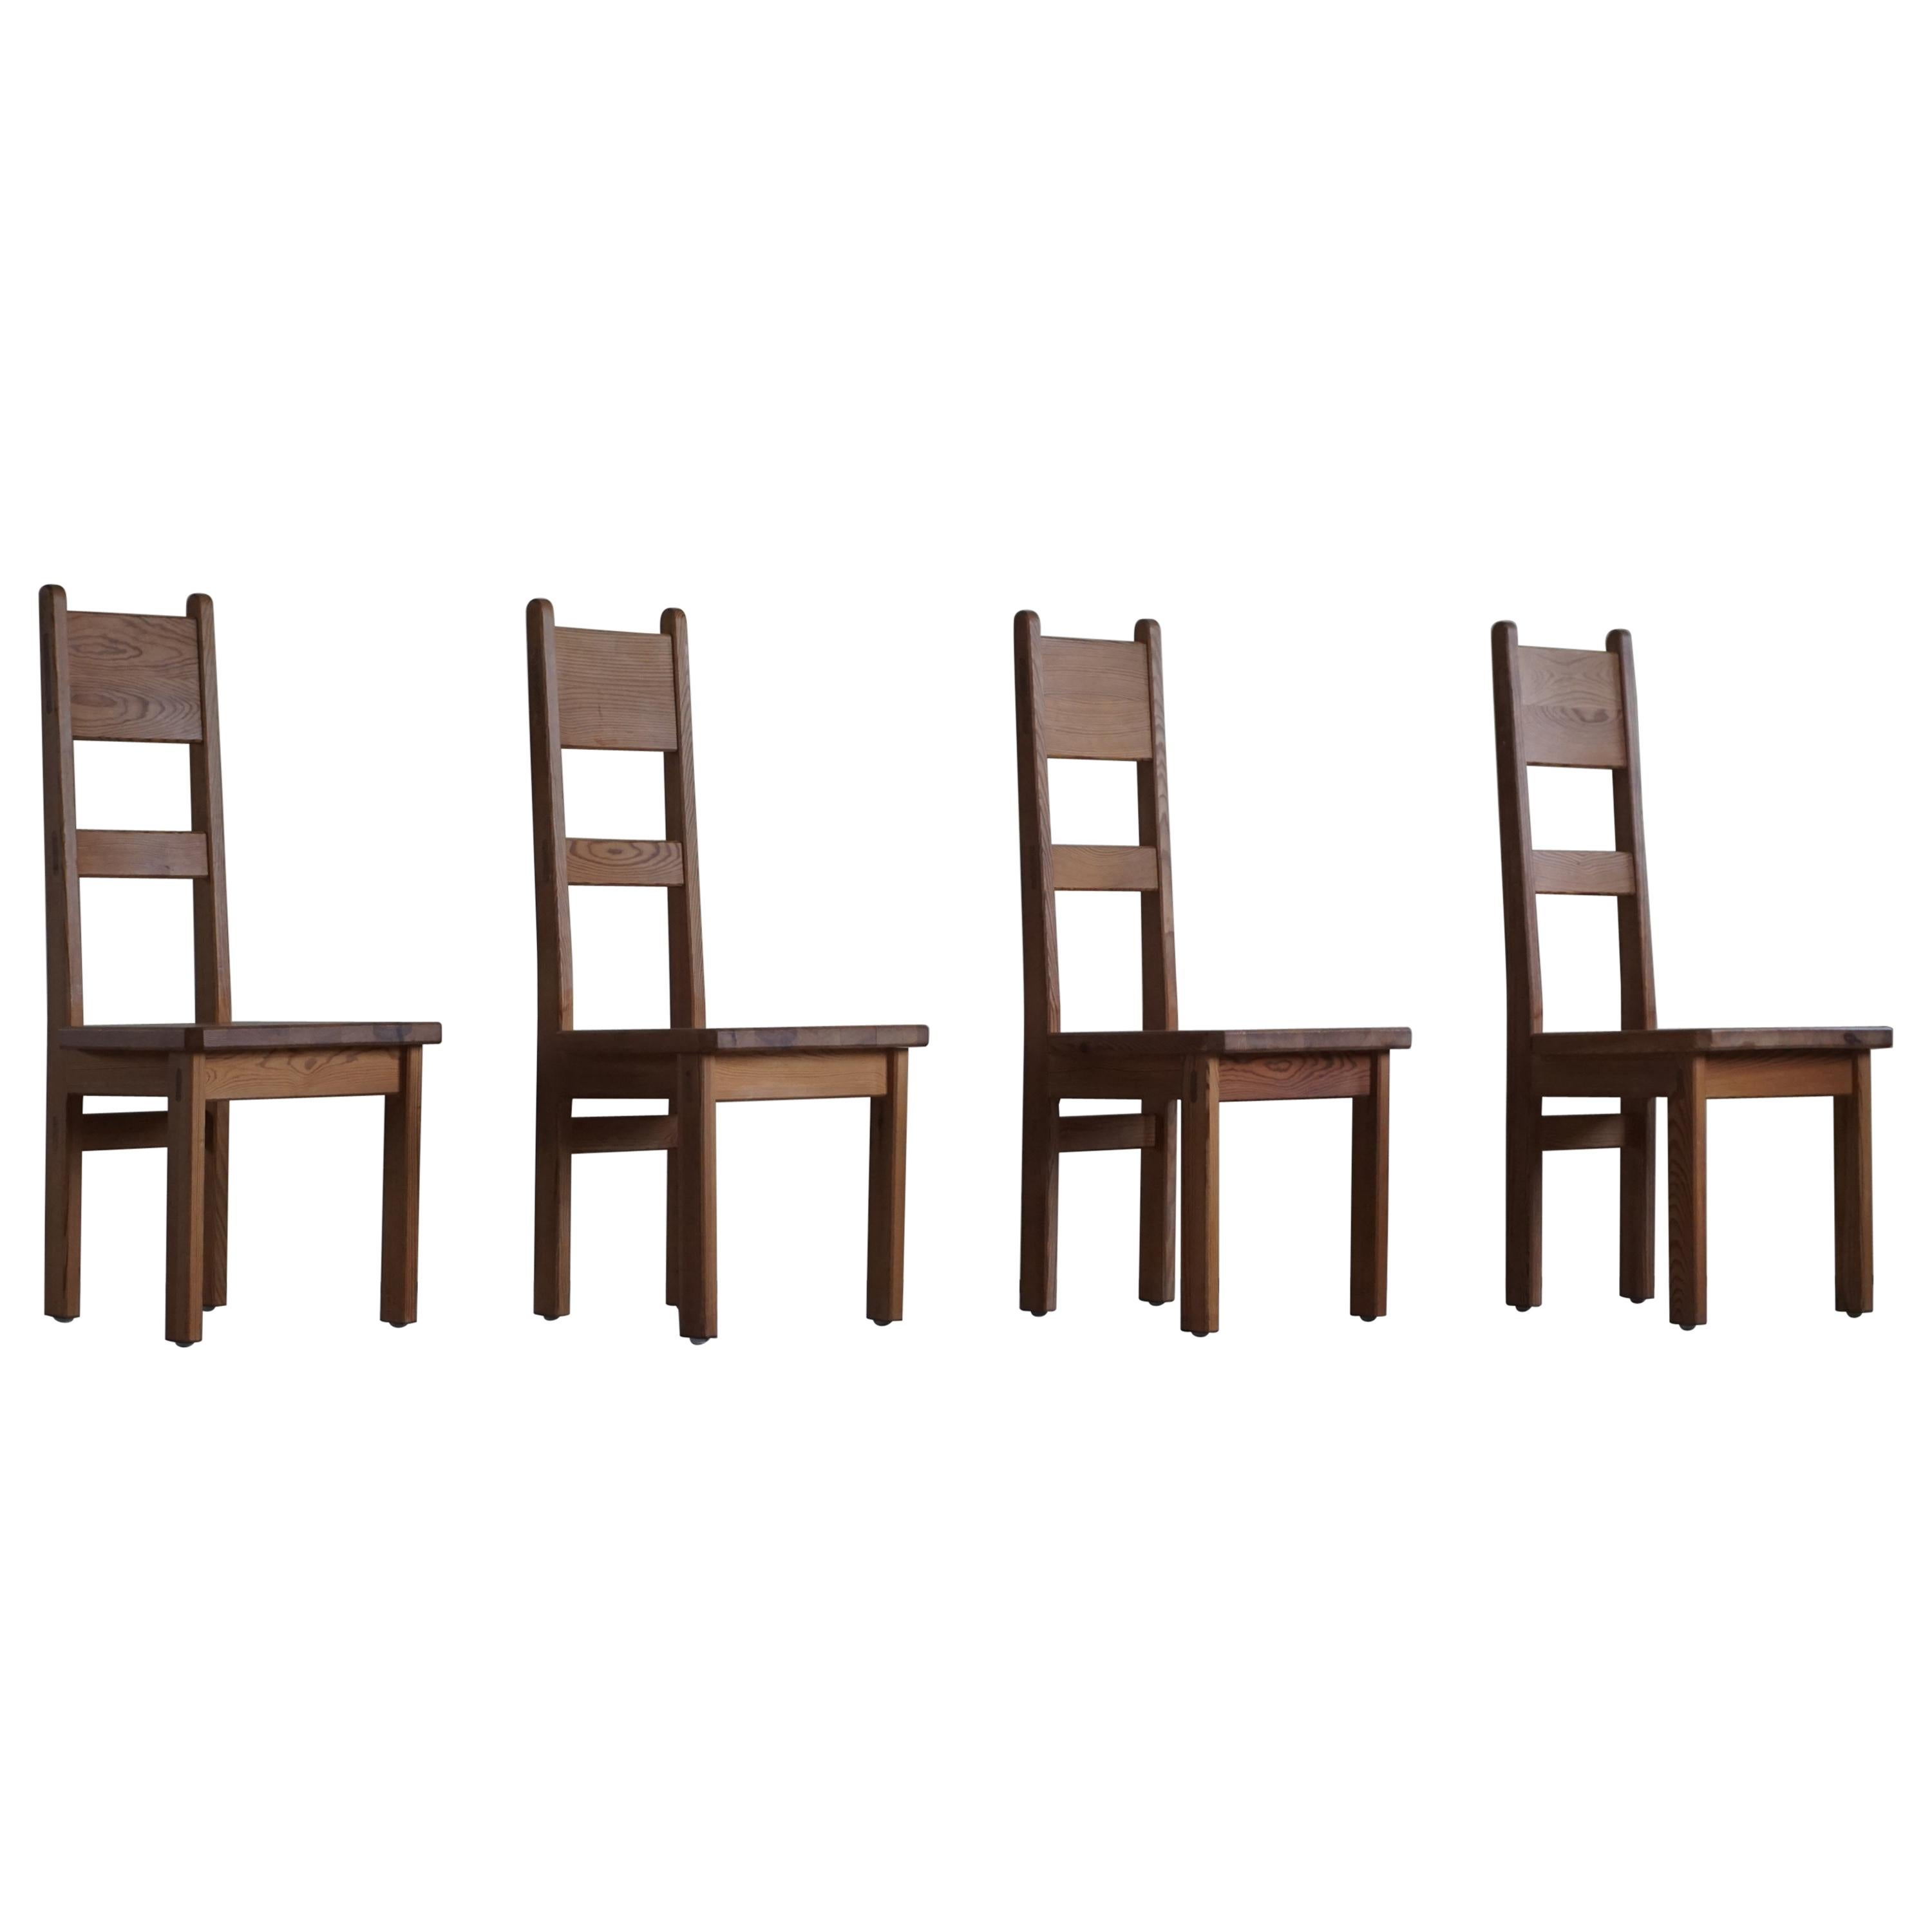 Swedish Modern Dining Chairs in Solid Pine by Roland Wilhelmsson, Set of 4, 1960